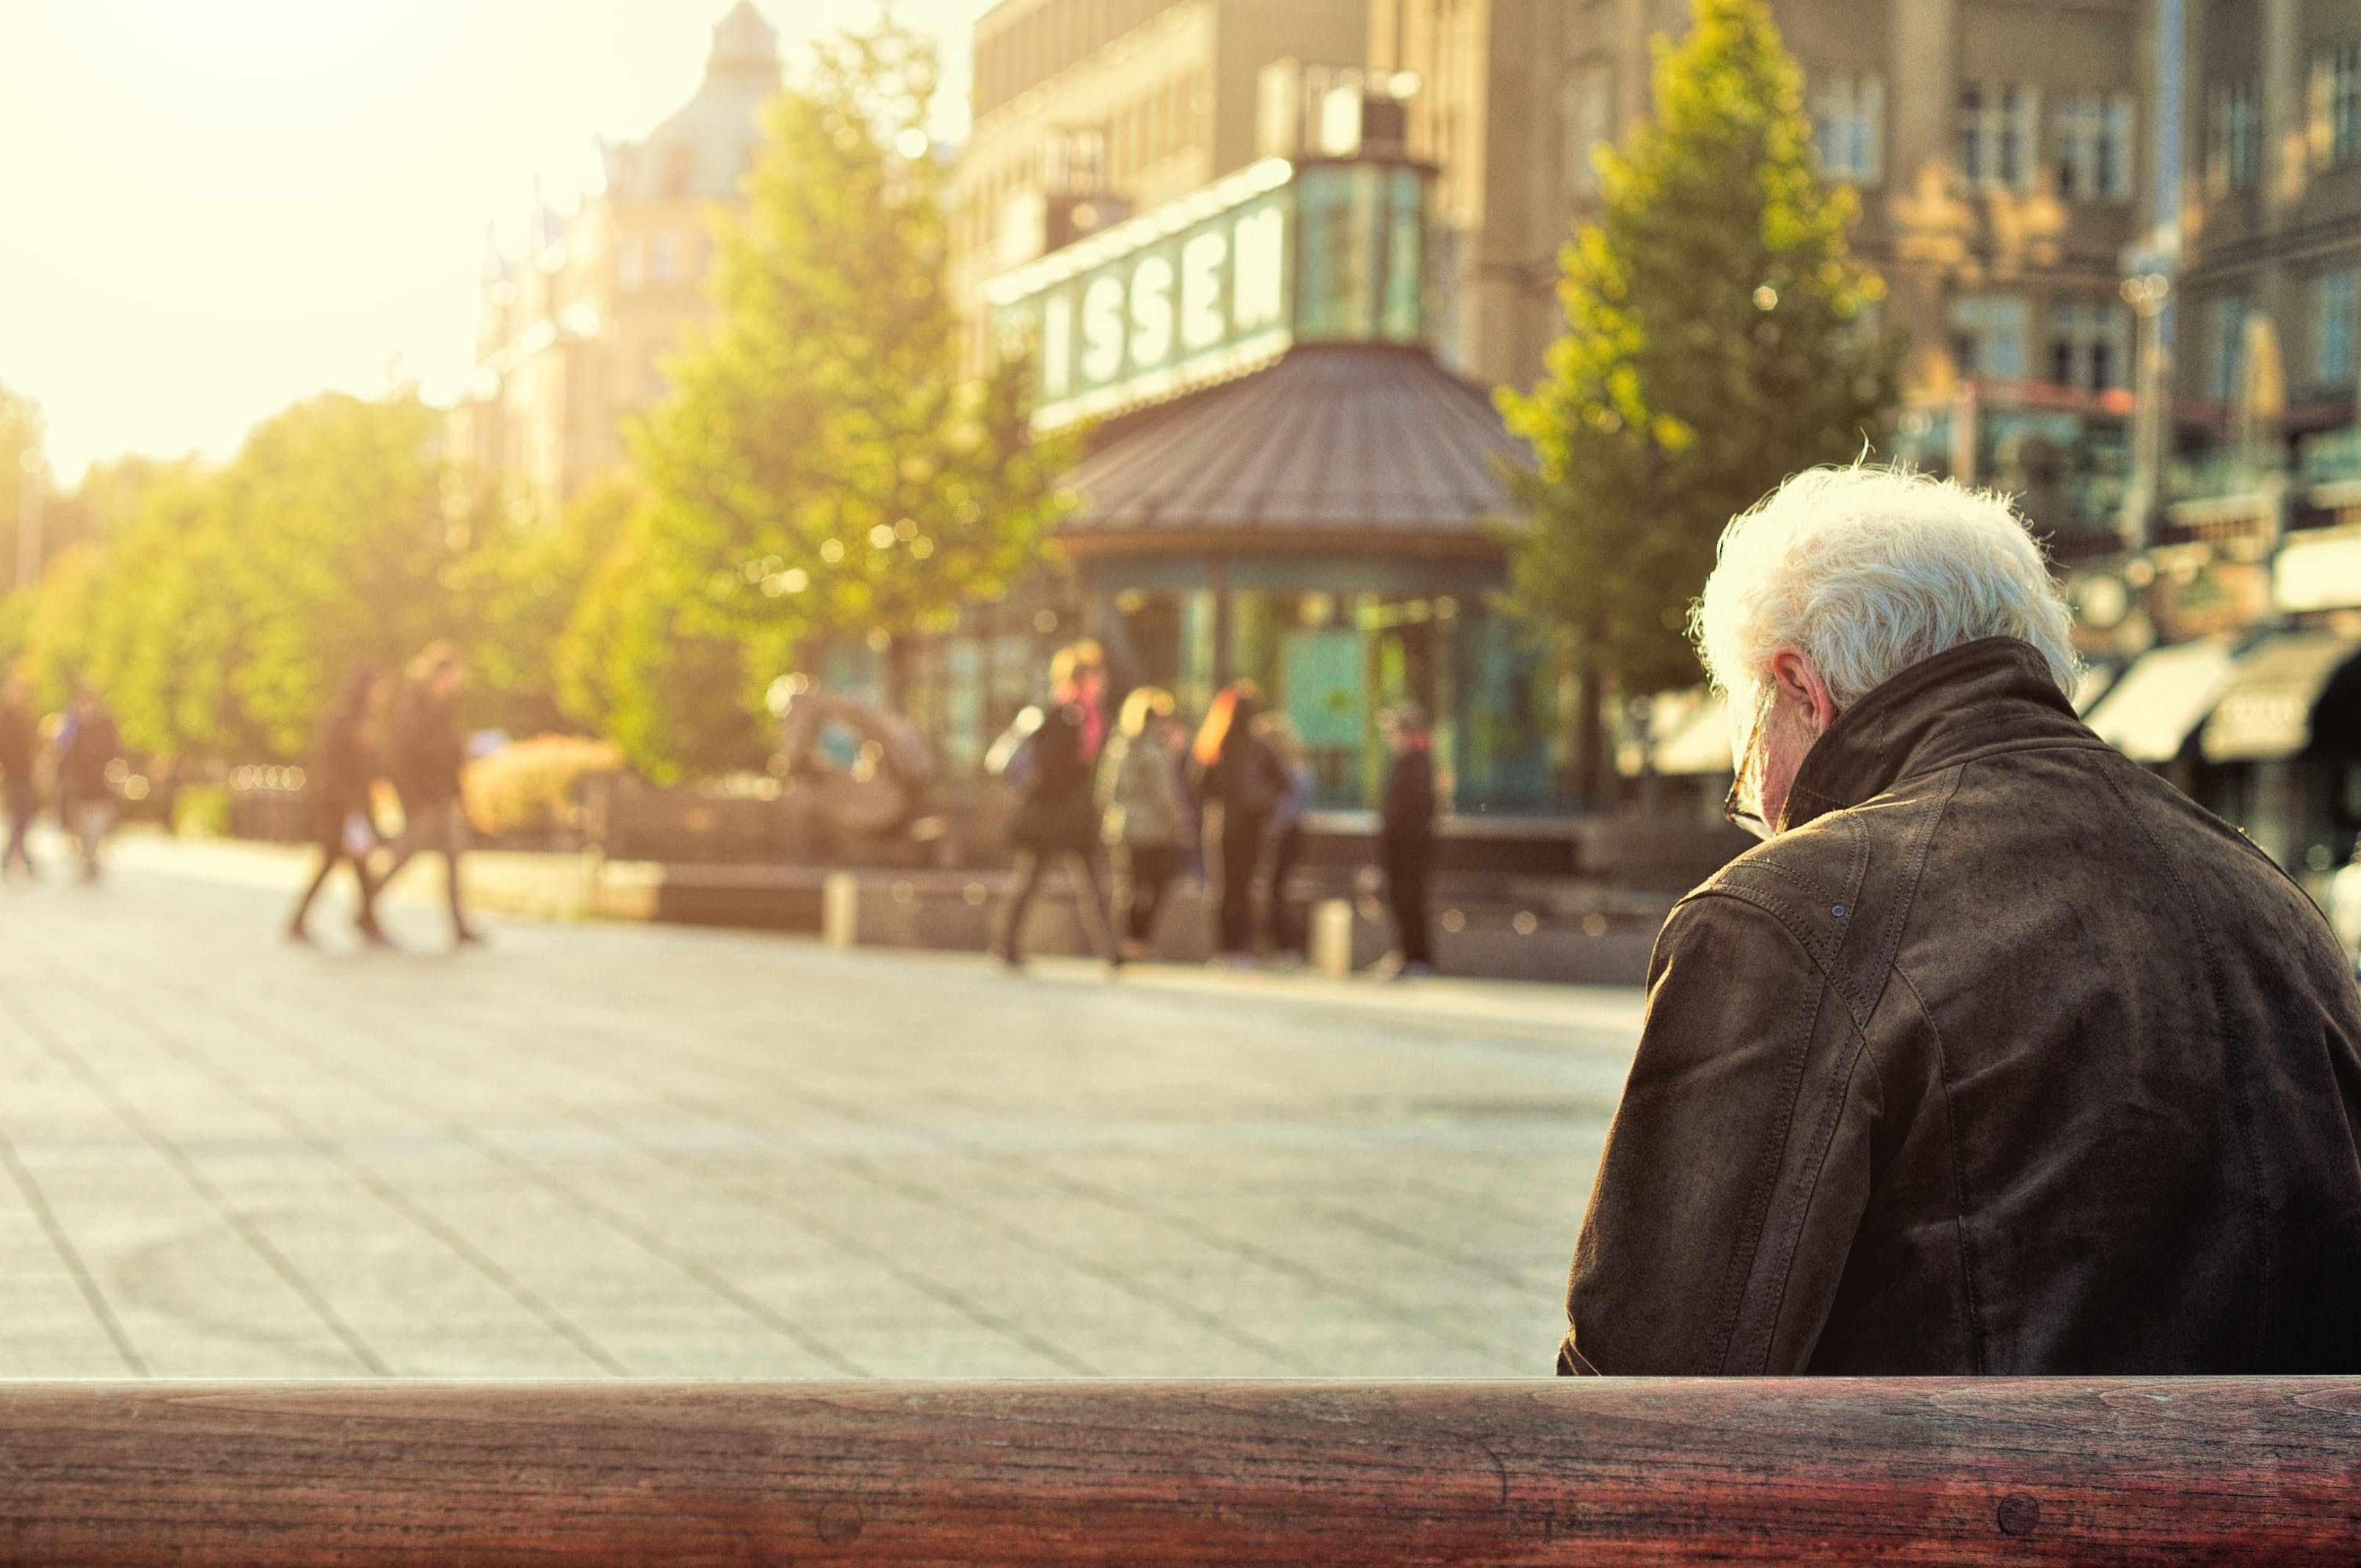 Man Sitting on Wooden Bench Wearing Black Leather Jacket